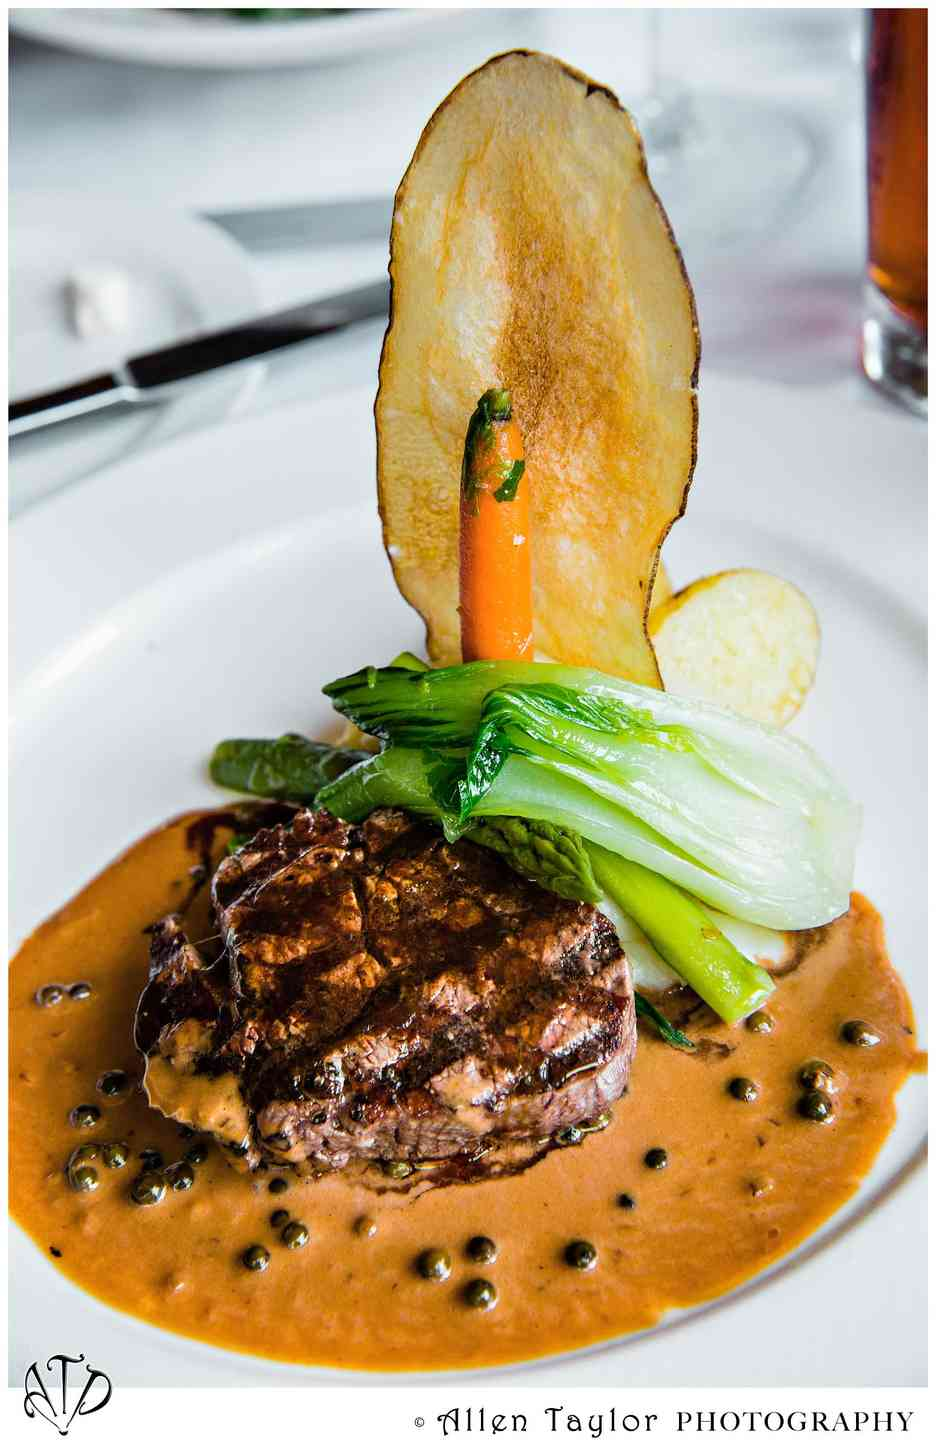 Petit Filet Mignon (4oz)